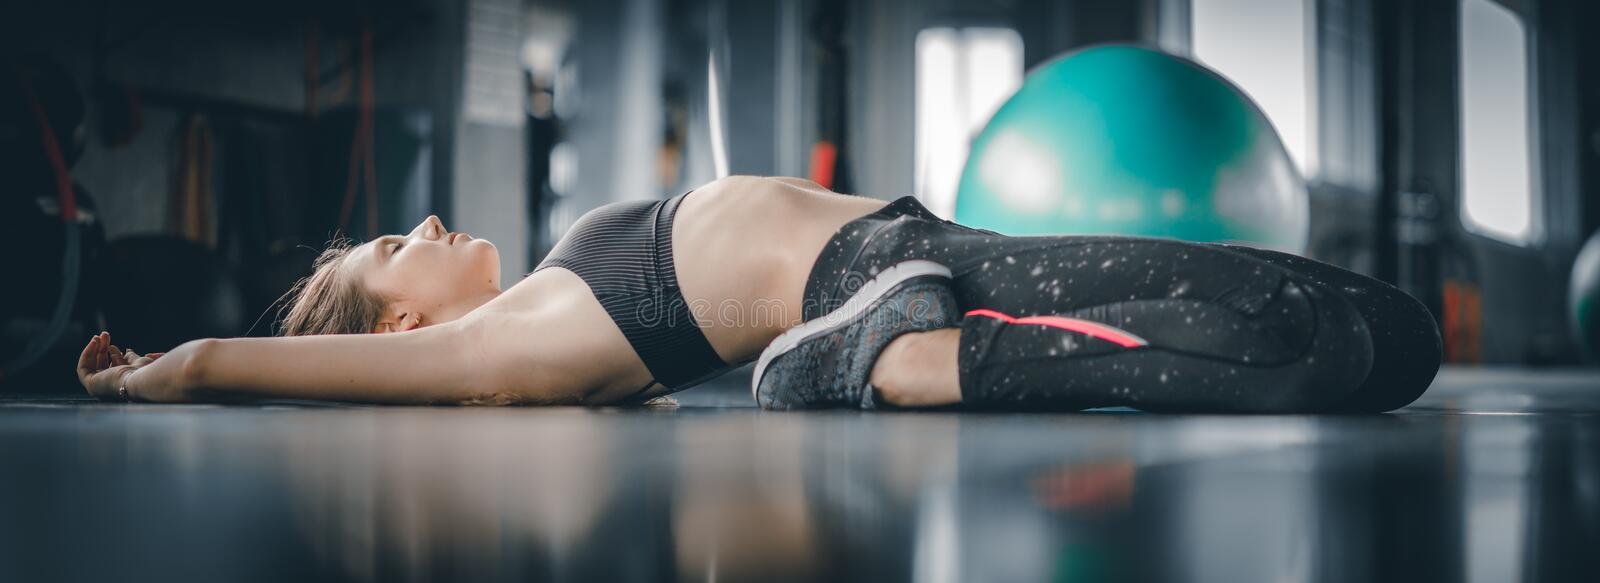 Young attractive woman fitness exercise workout in gym. Woman st royalty free stock images